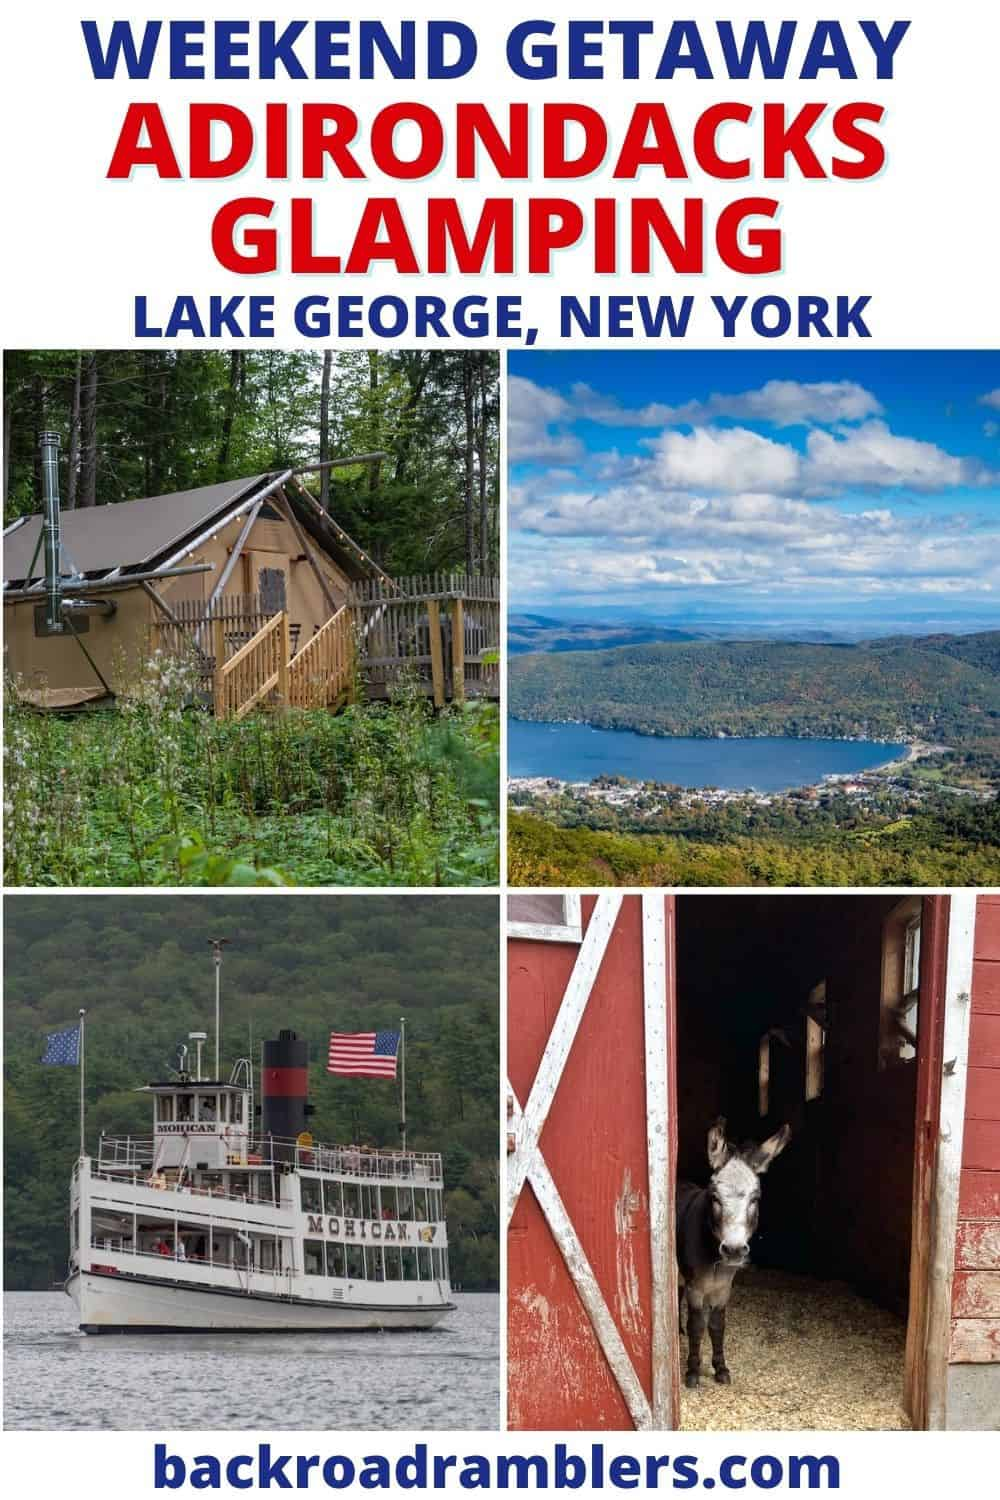 A collage of photos featuring Adirondacks glamping photos. Text overlay: Adirondack Glamping in Lake George, New York.